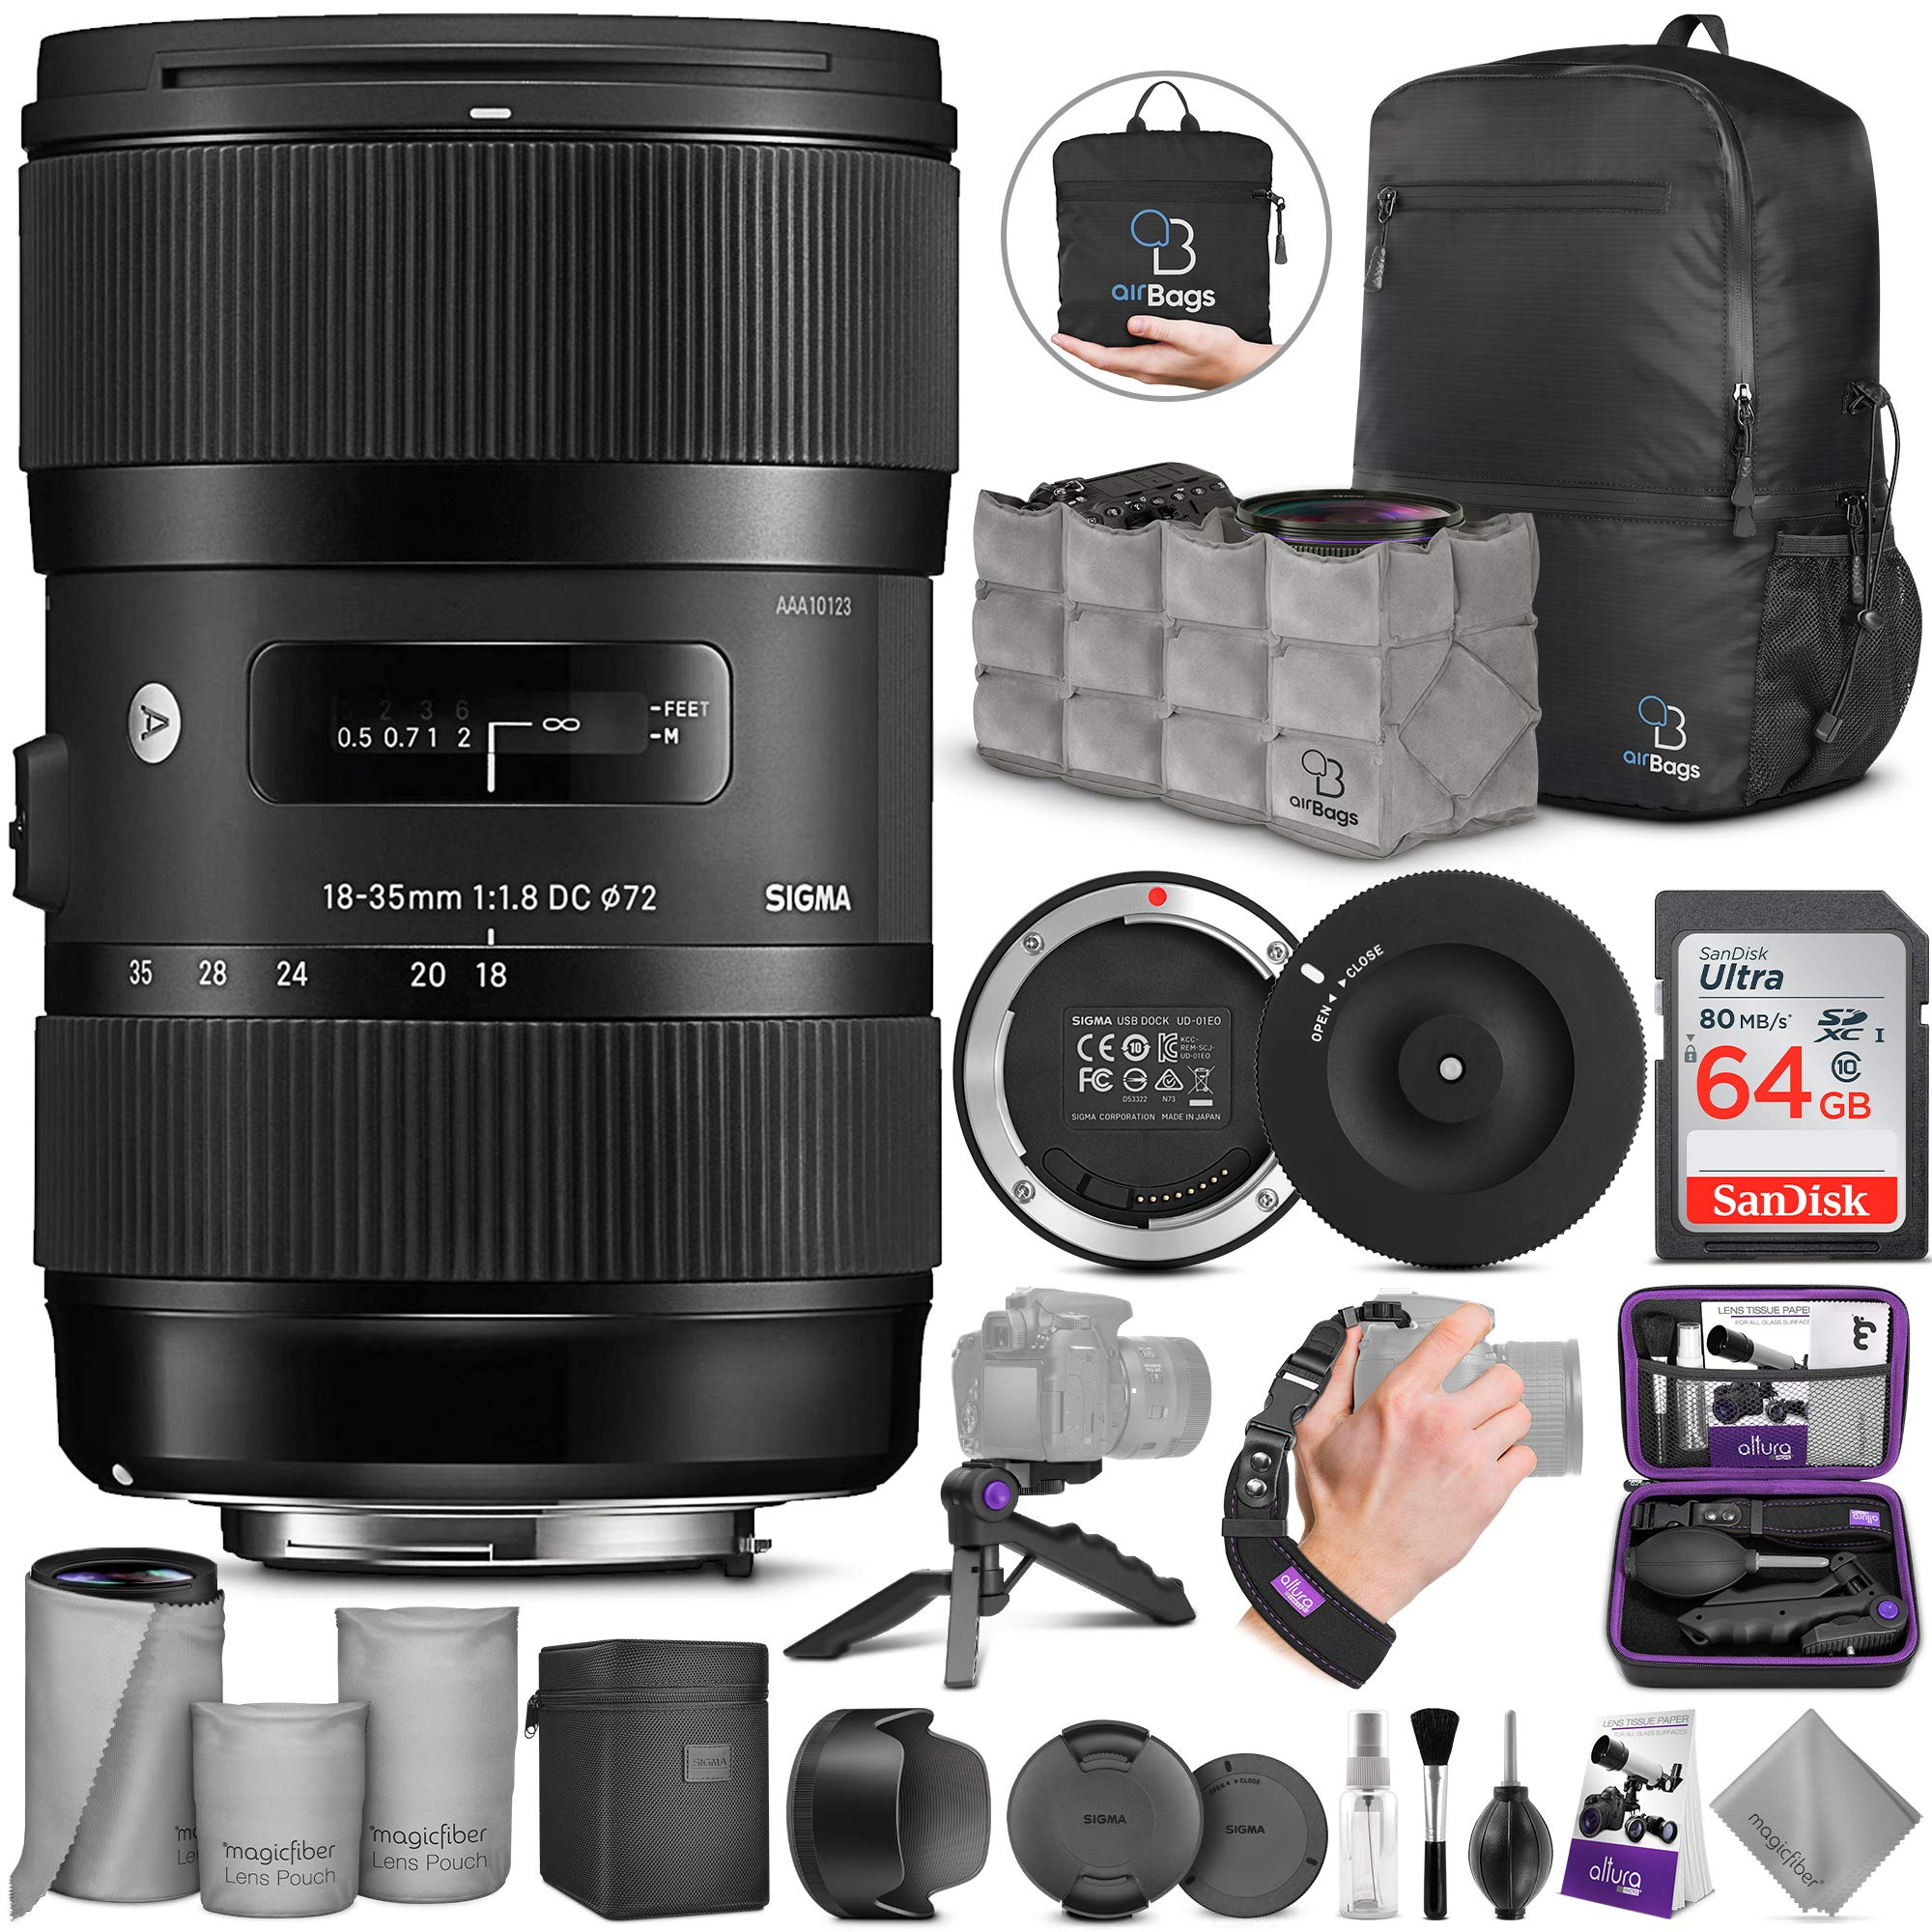 Sigma 18-35mm F1.8 Art DC HSM Lens for Canon DSLR Cameras + Sigma USB Dock with Altura Photo Advanced Accessory and Travel Bundle by Sigma